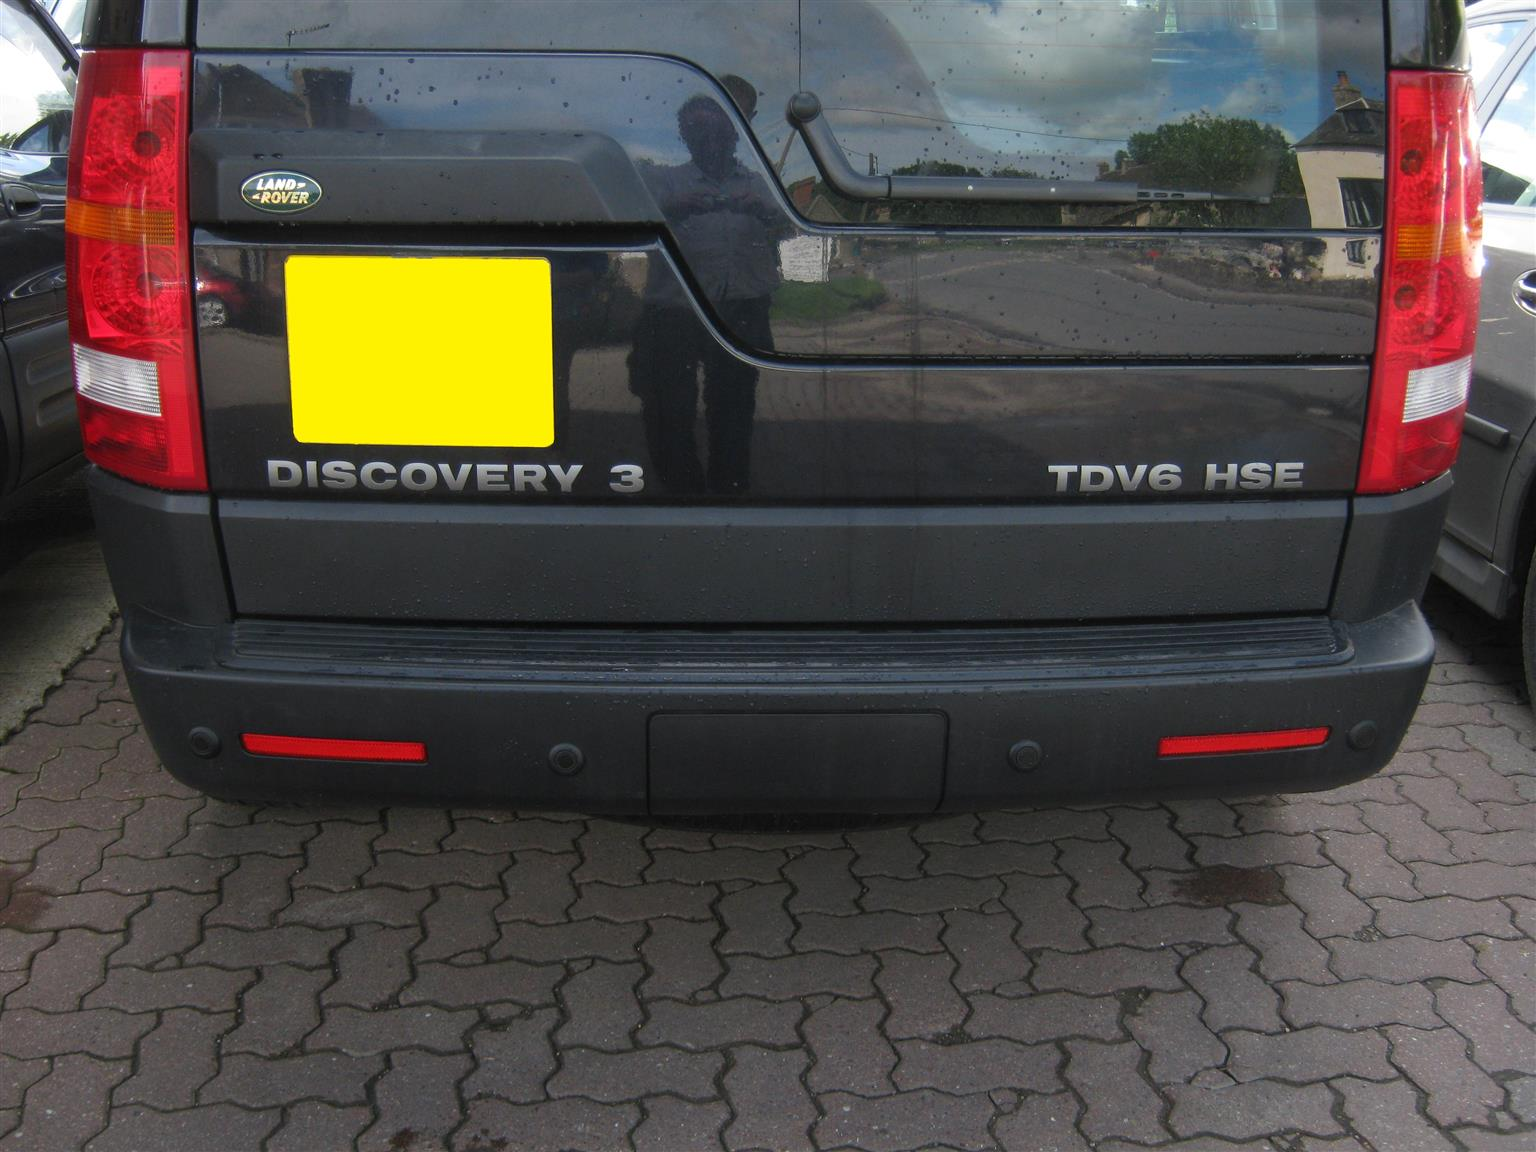 Land Rover Discovery 3 Rear Bumper